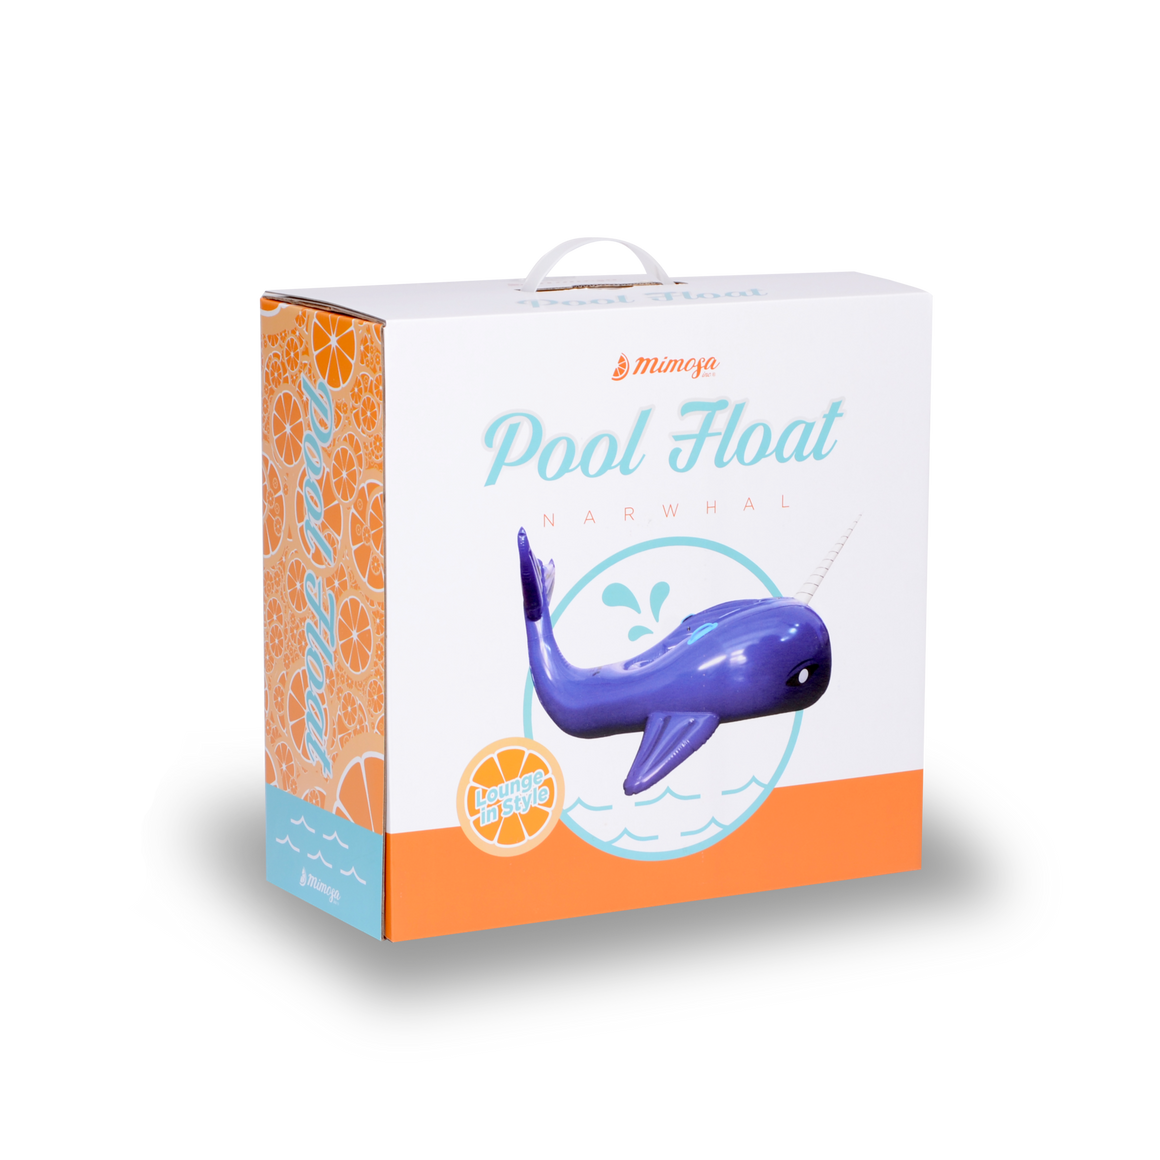 Narwhal Whale Pool Float